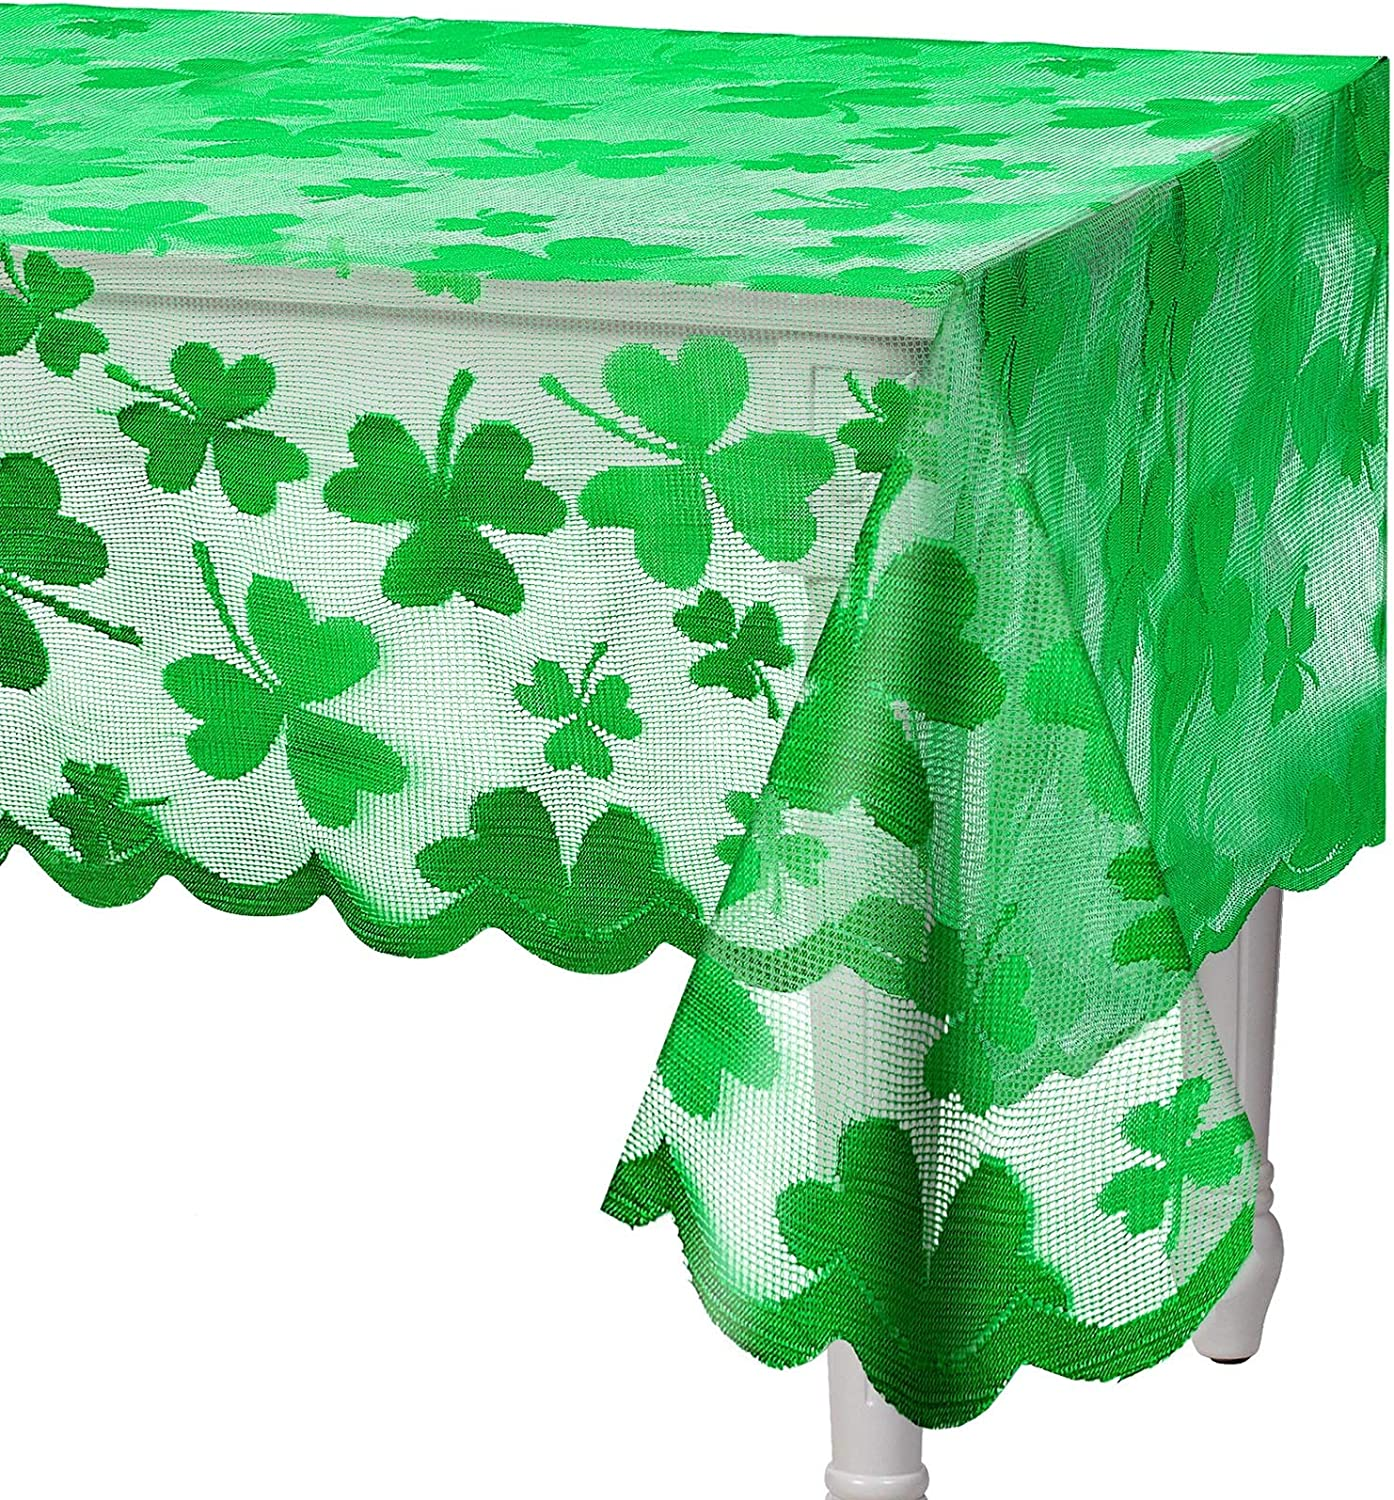 St Patrick's Day Tablecloth Rectangle Lace Irish Table Cloth Holiday Green Clover Table Cloth with Embroidered Shamrock for St Patrick's Day and Family Dinners Party, 60 x 84 Inch, Seat 6-8 People